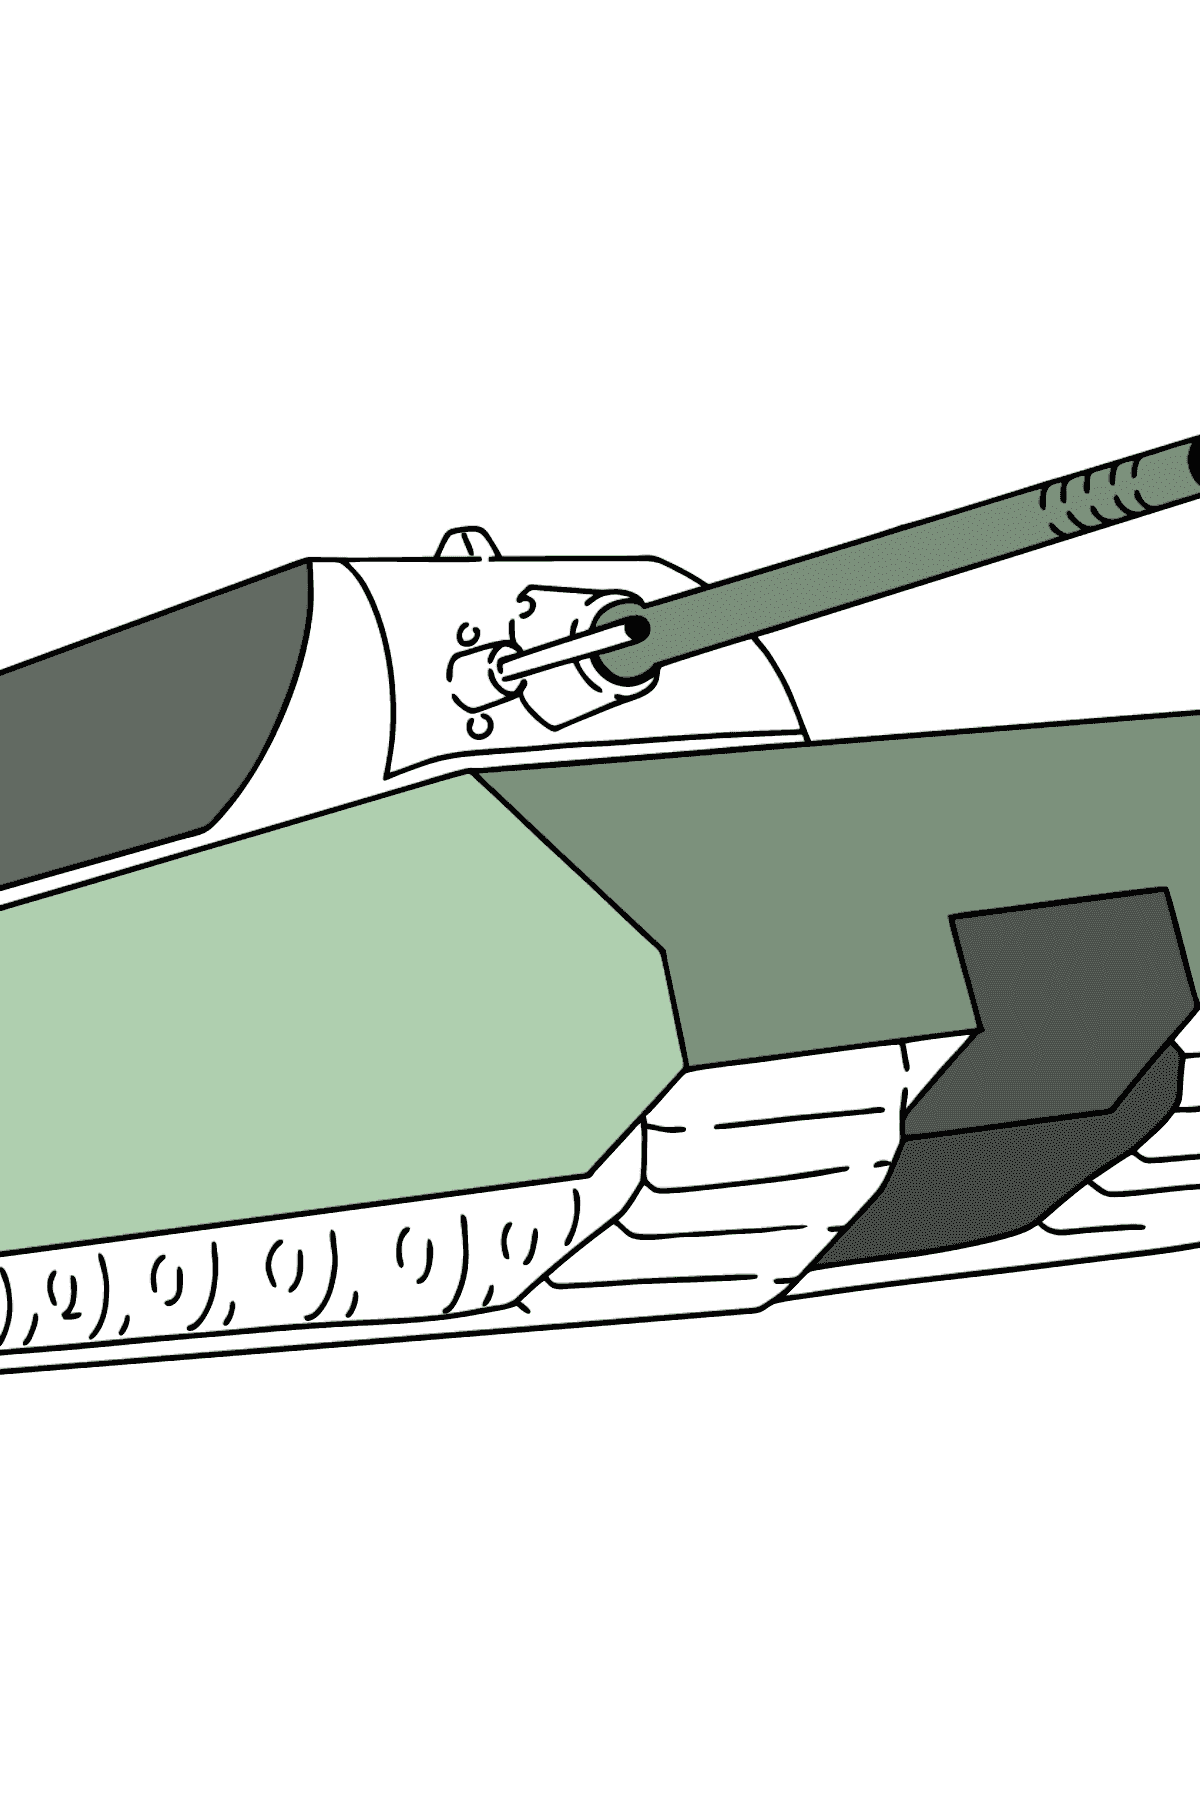 Tank Mouse coloring page - Coloring Pages for Kids